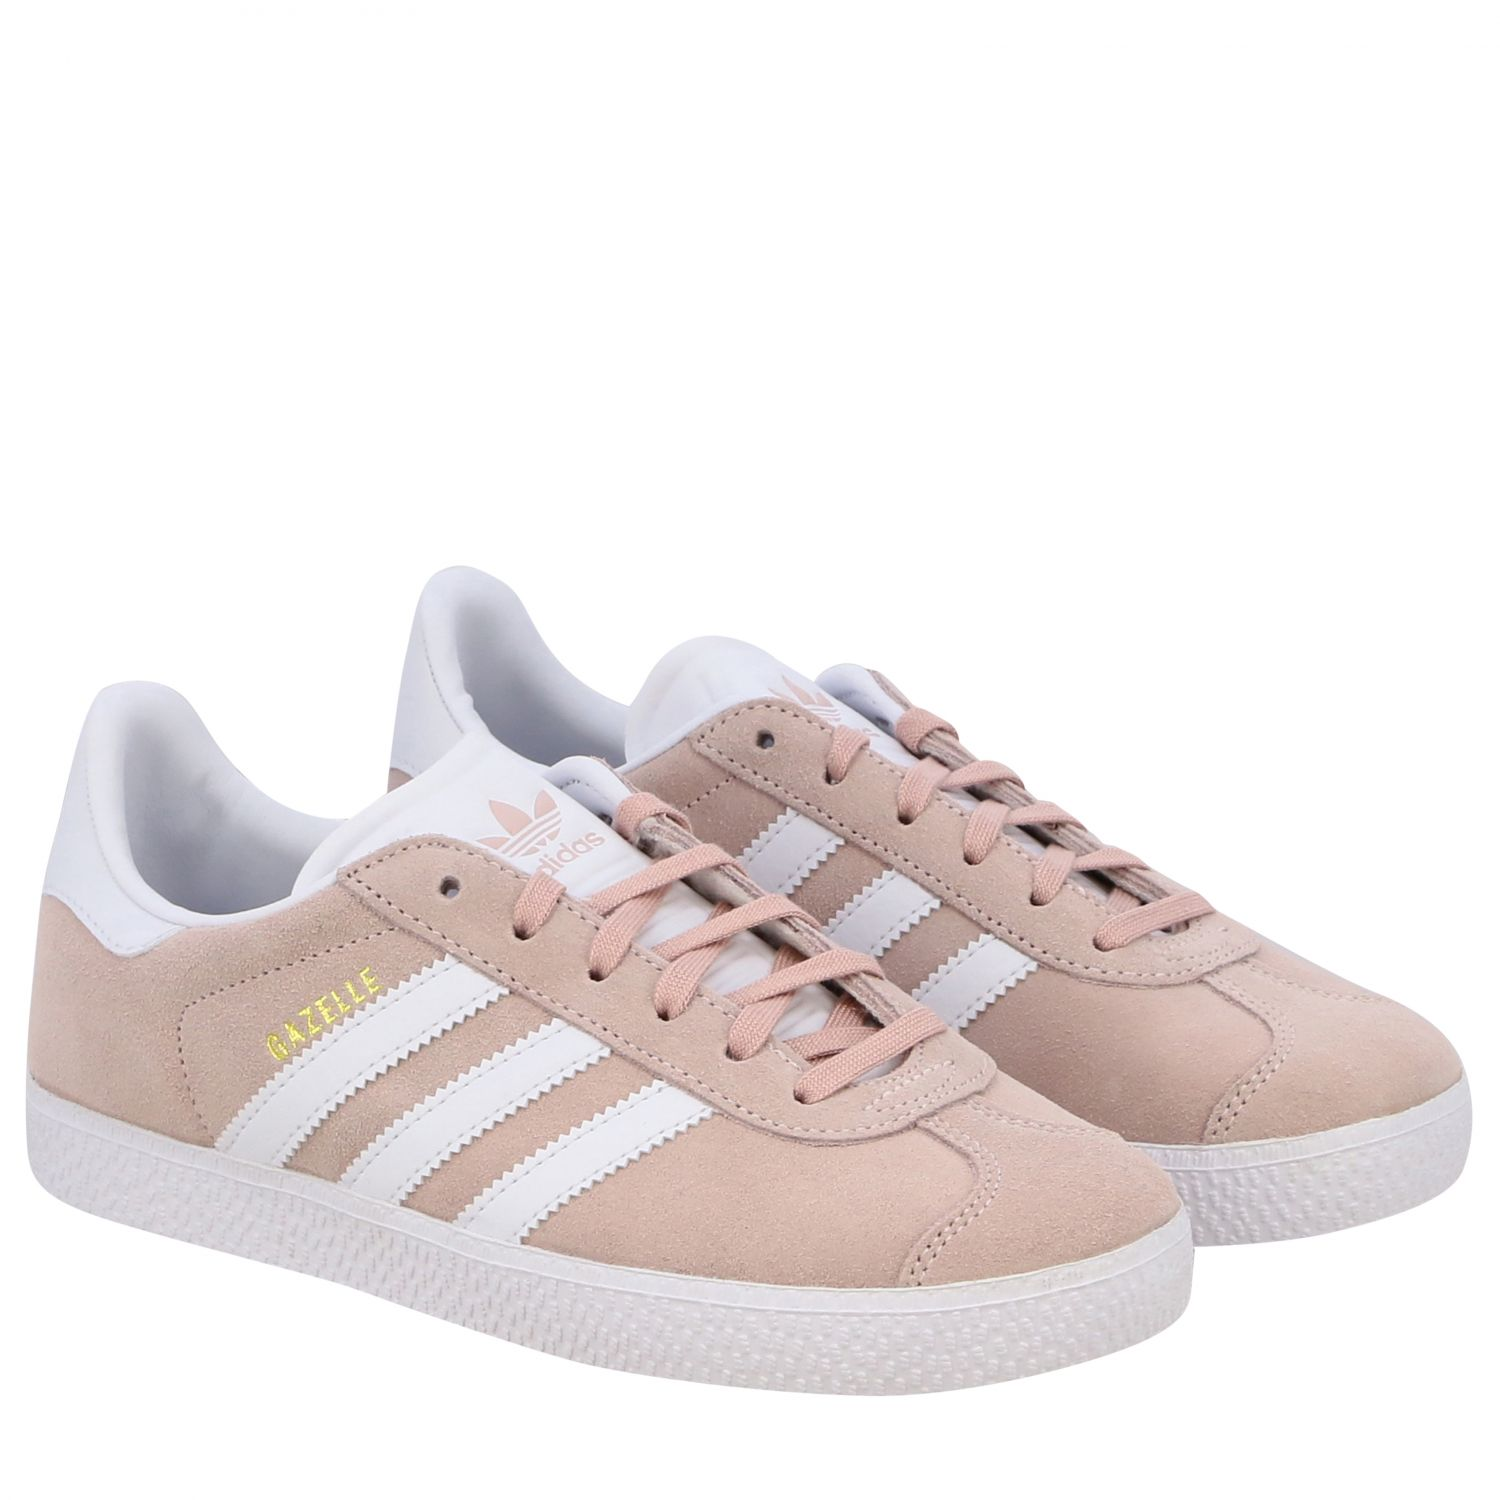 Shoes Adidas Originals: Gazelle J Adidas Originals sneakers in synthetic suede and leather pink 2